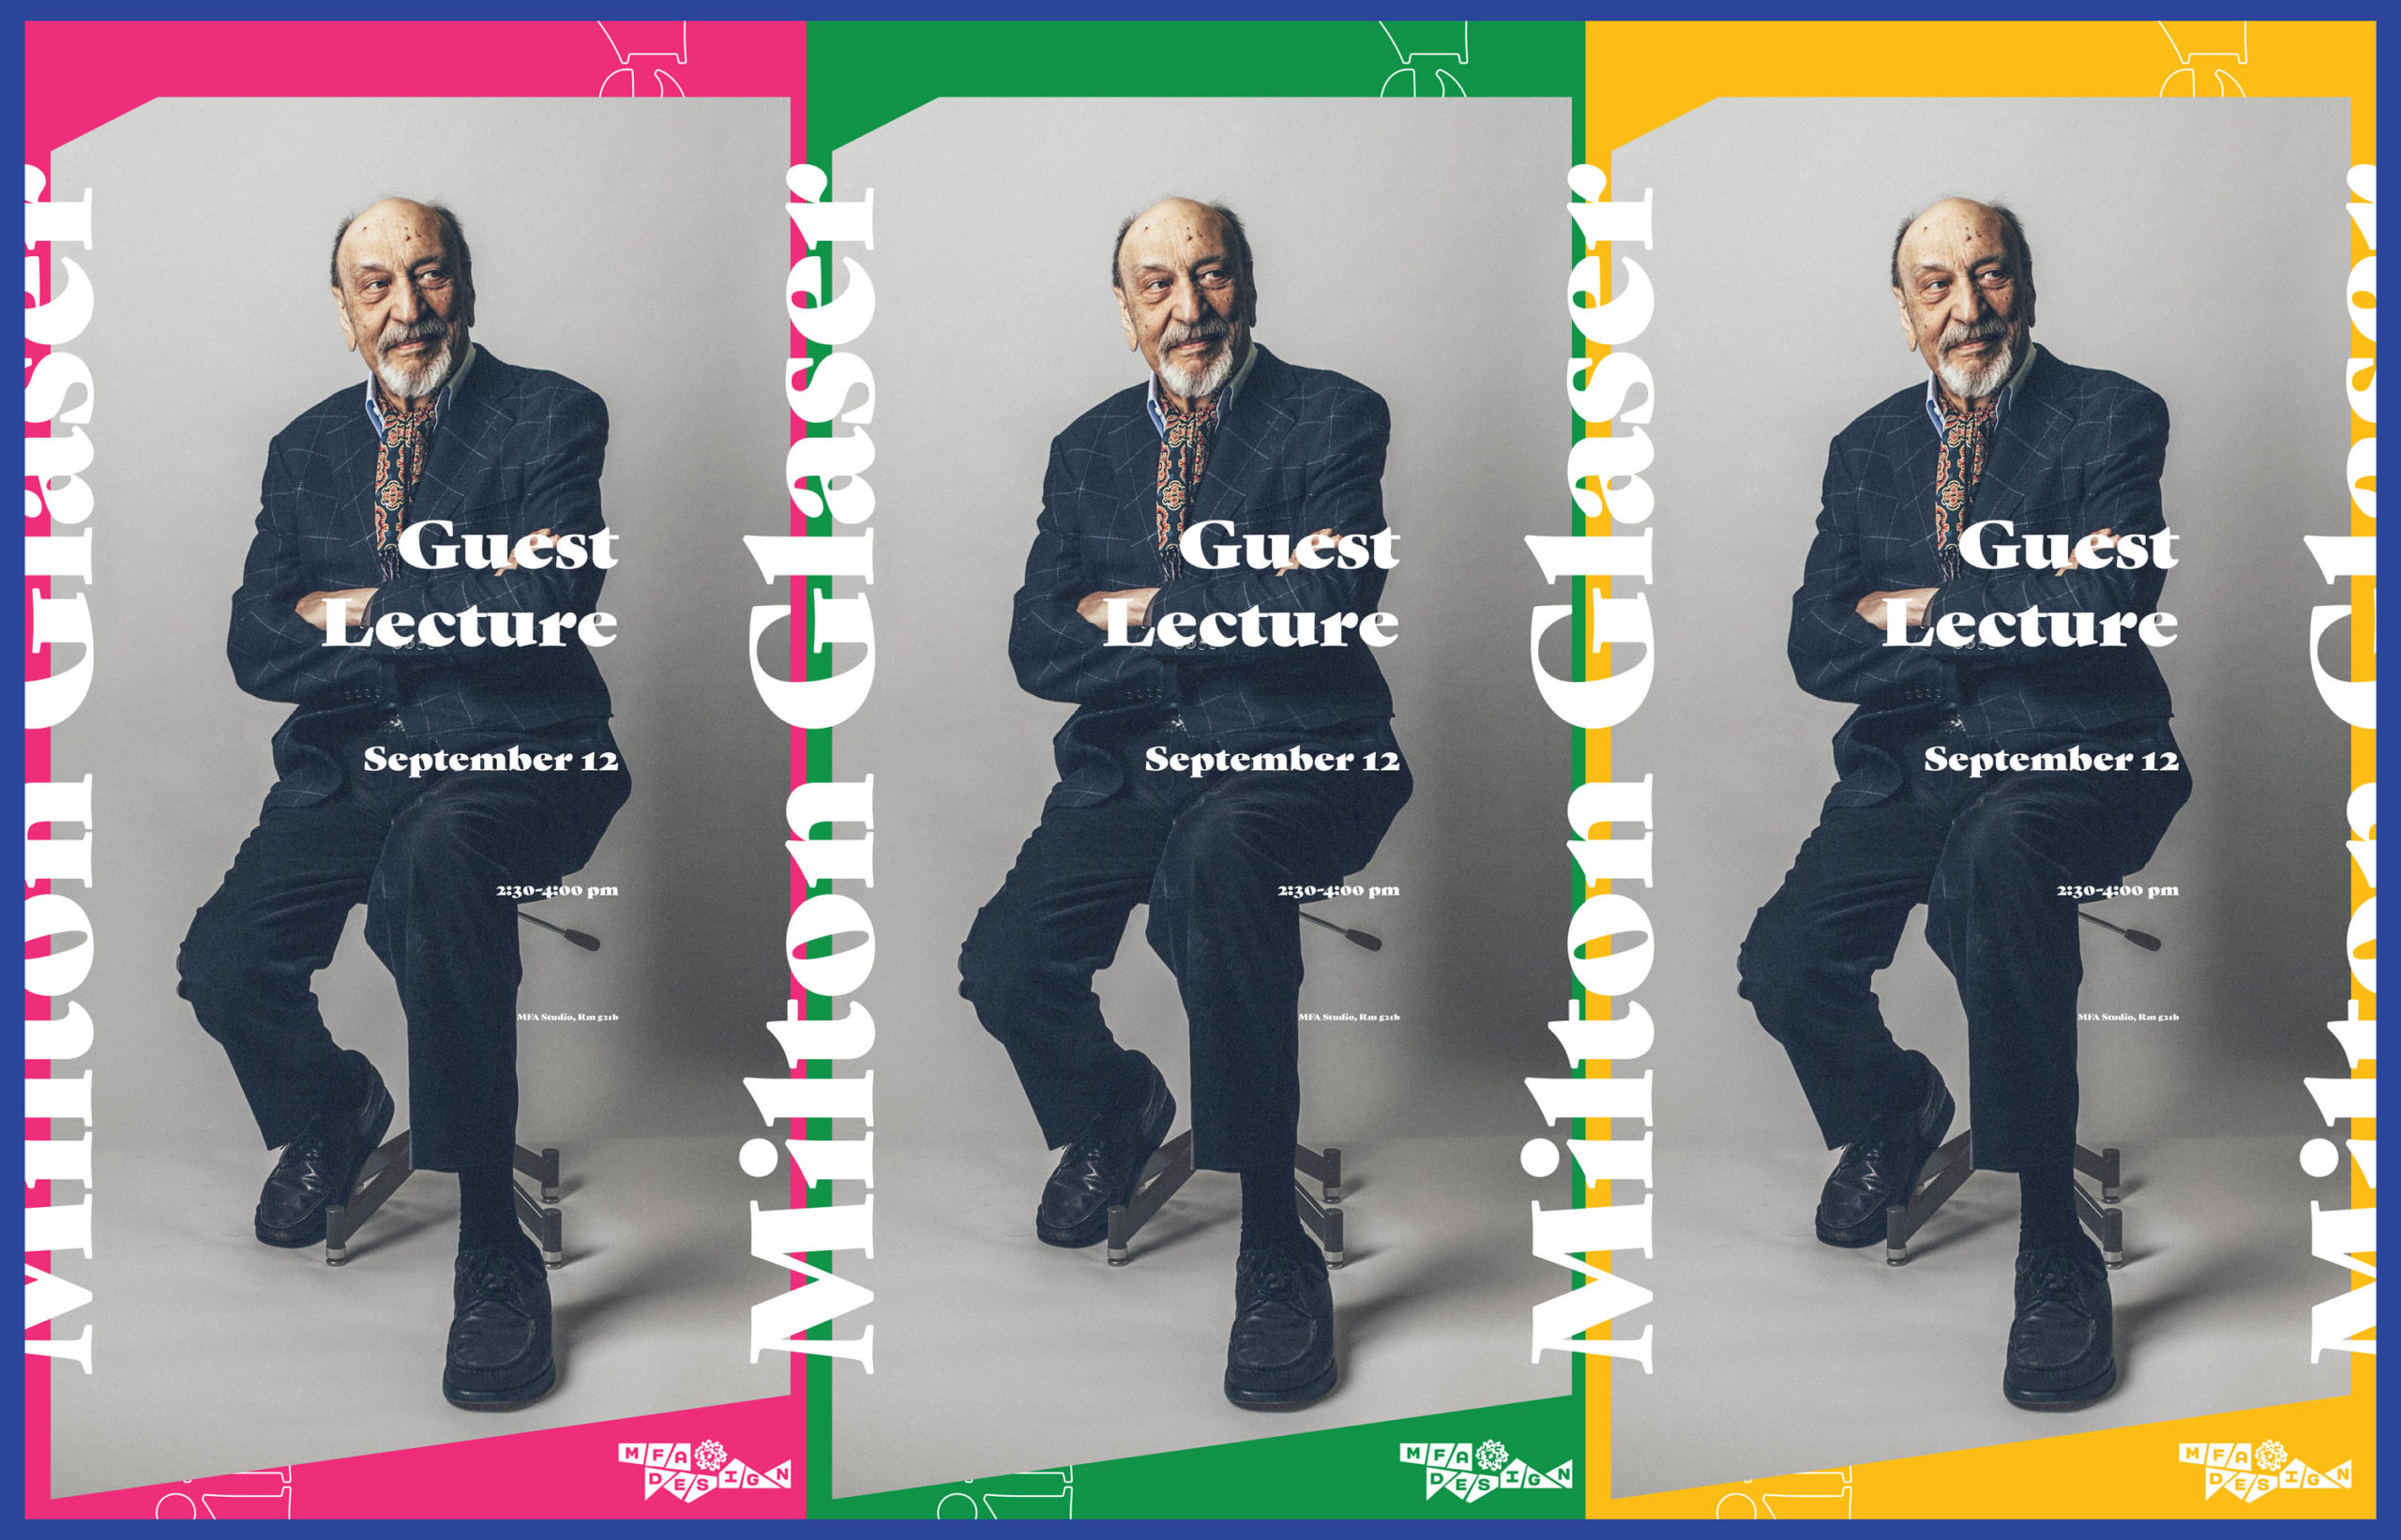 Milton Glaser lecture poster